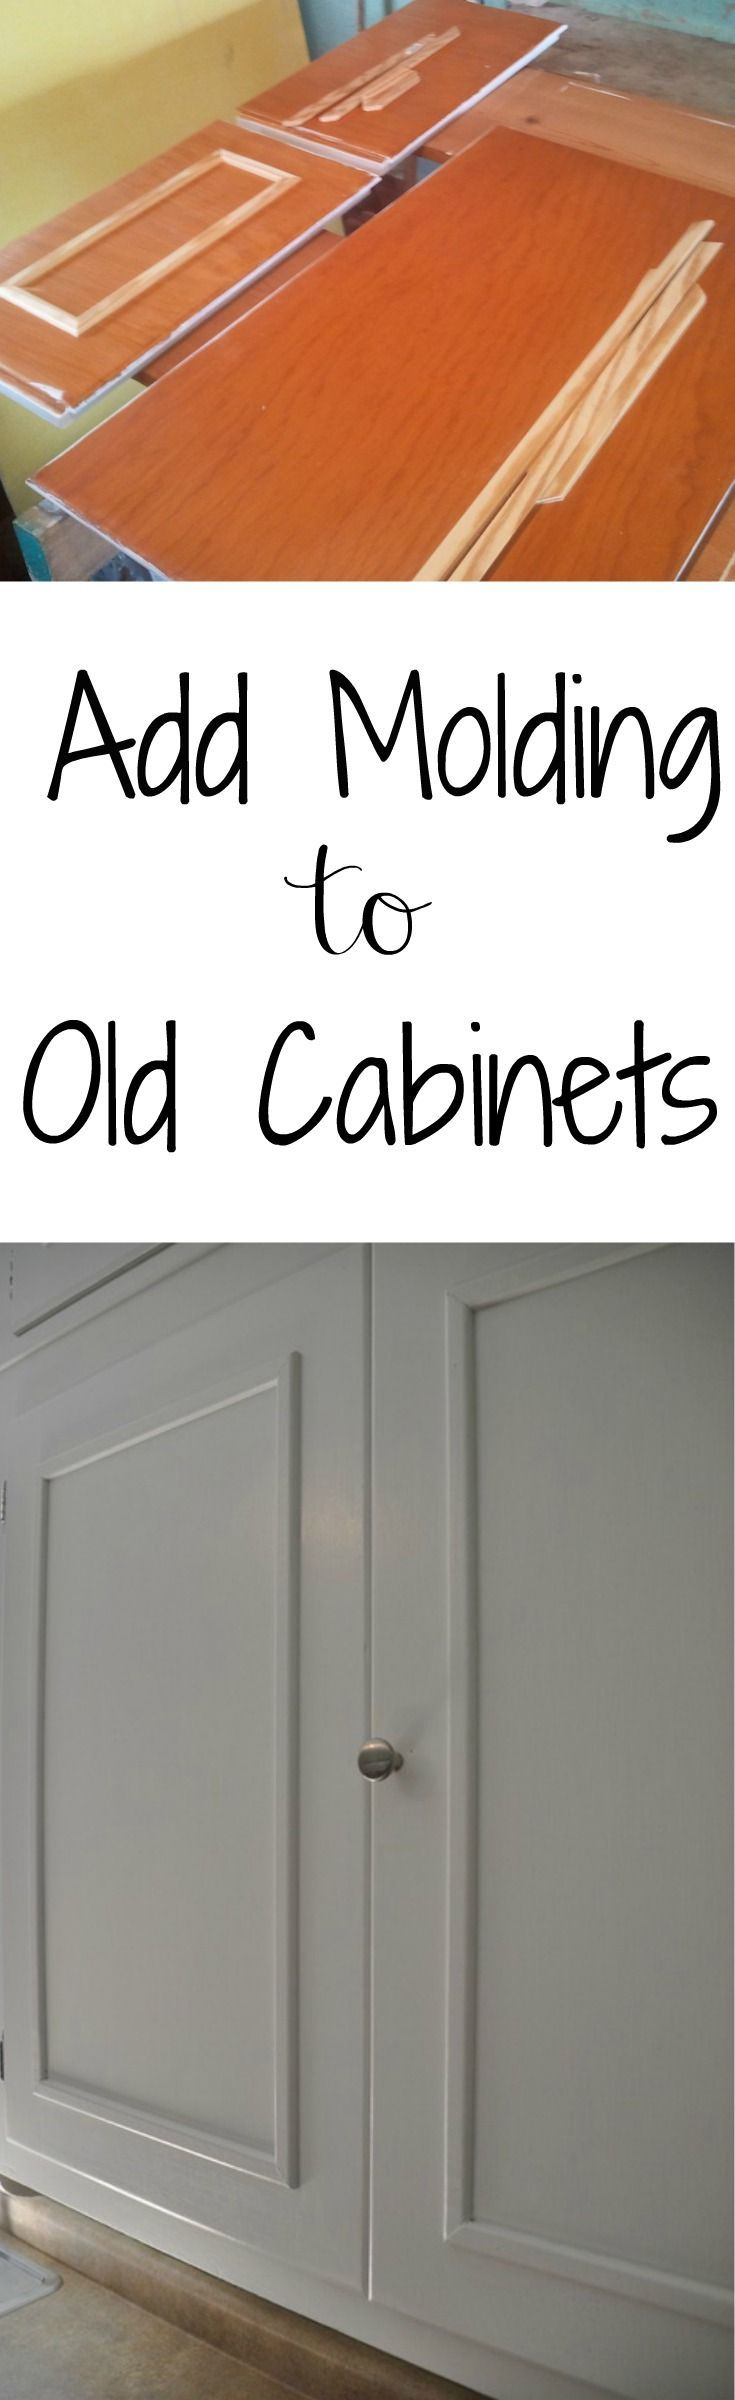 Bailey Cabinet Company 25 Best Ideas About Cabinets To Go On Pinterest Painting